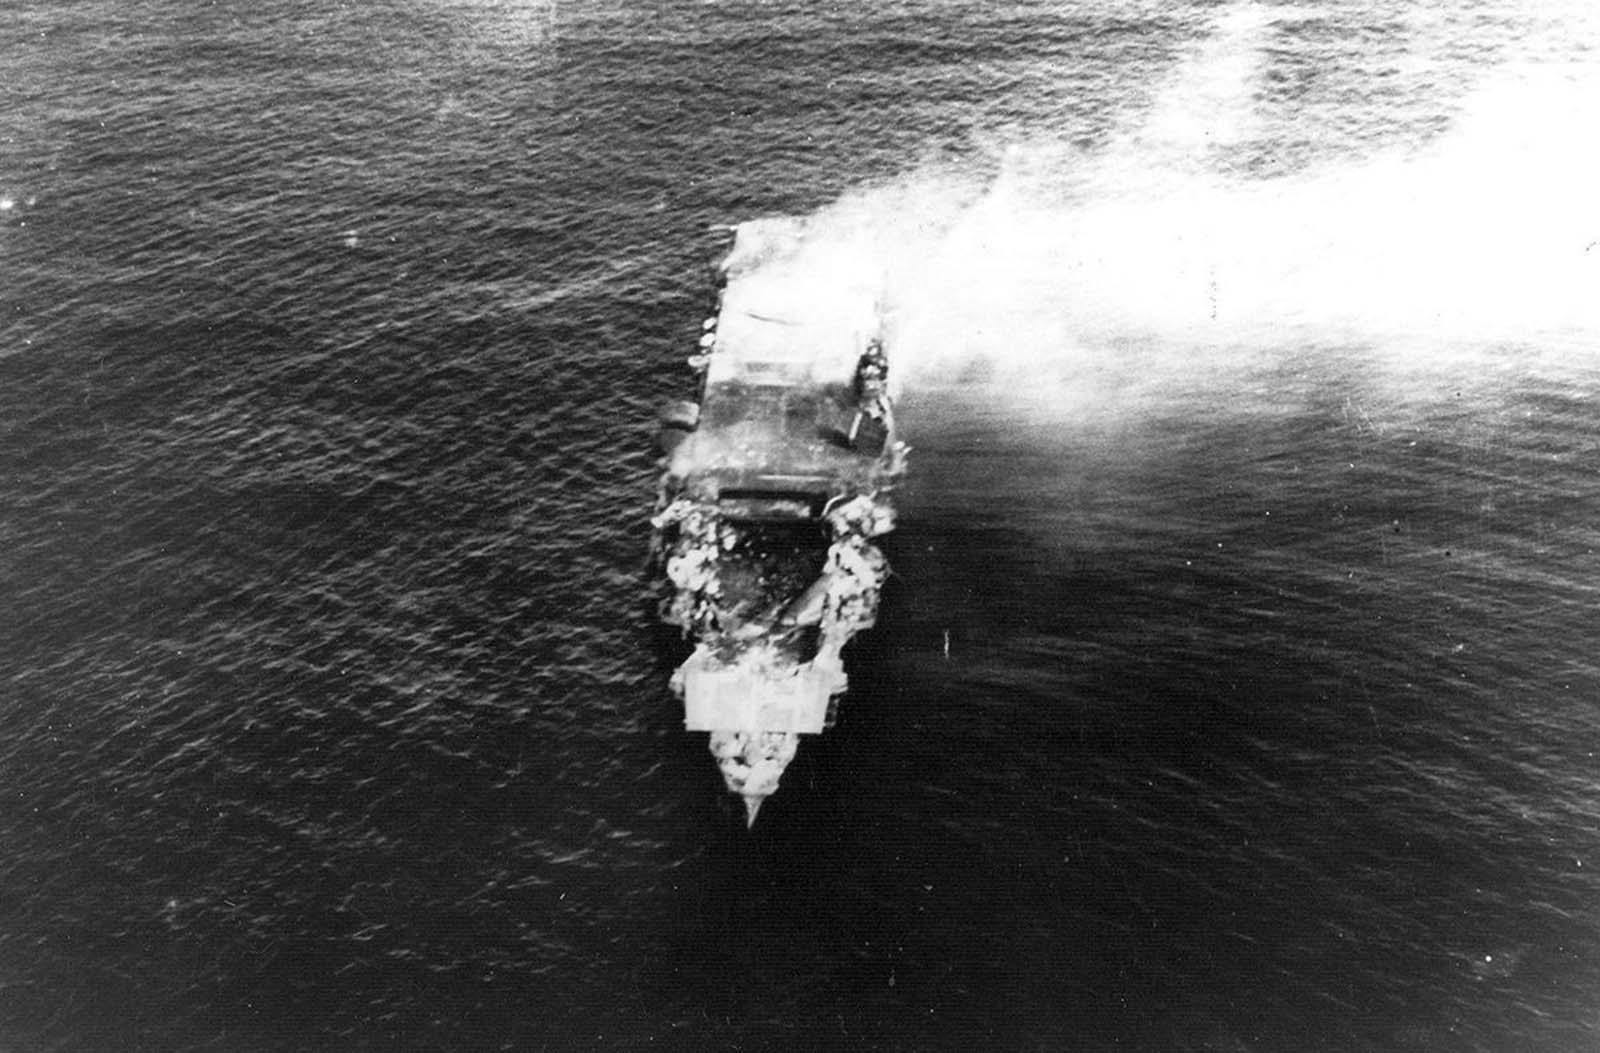 The heavily damaged, burning Japanese aircraft carrier Hiryu, photographed by a plane from the carrier Hosho shortly after sunrise on June 5, 1942. Hiryu sank a few hours later. Note collapsed flight deck over the forward hangar.